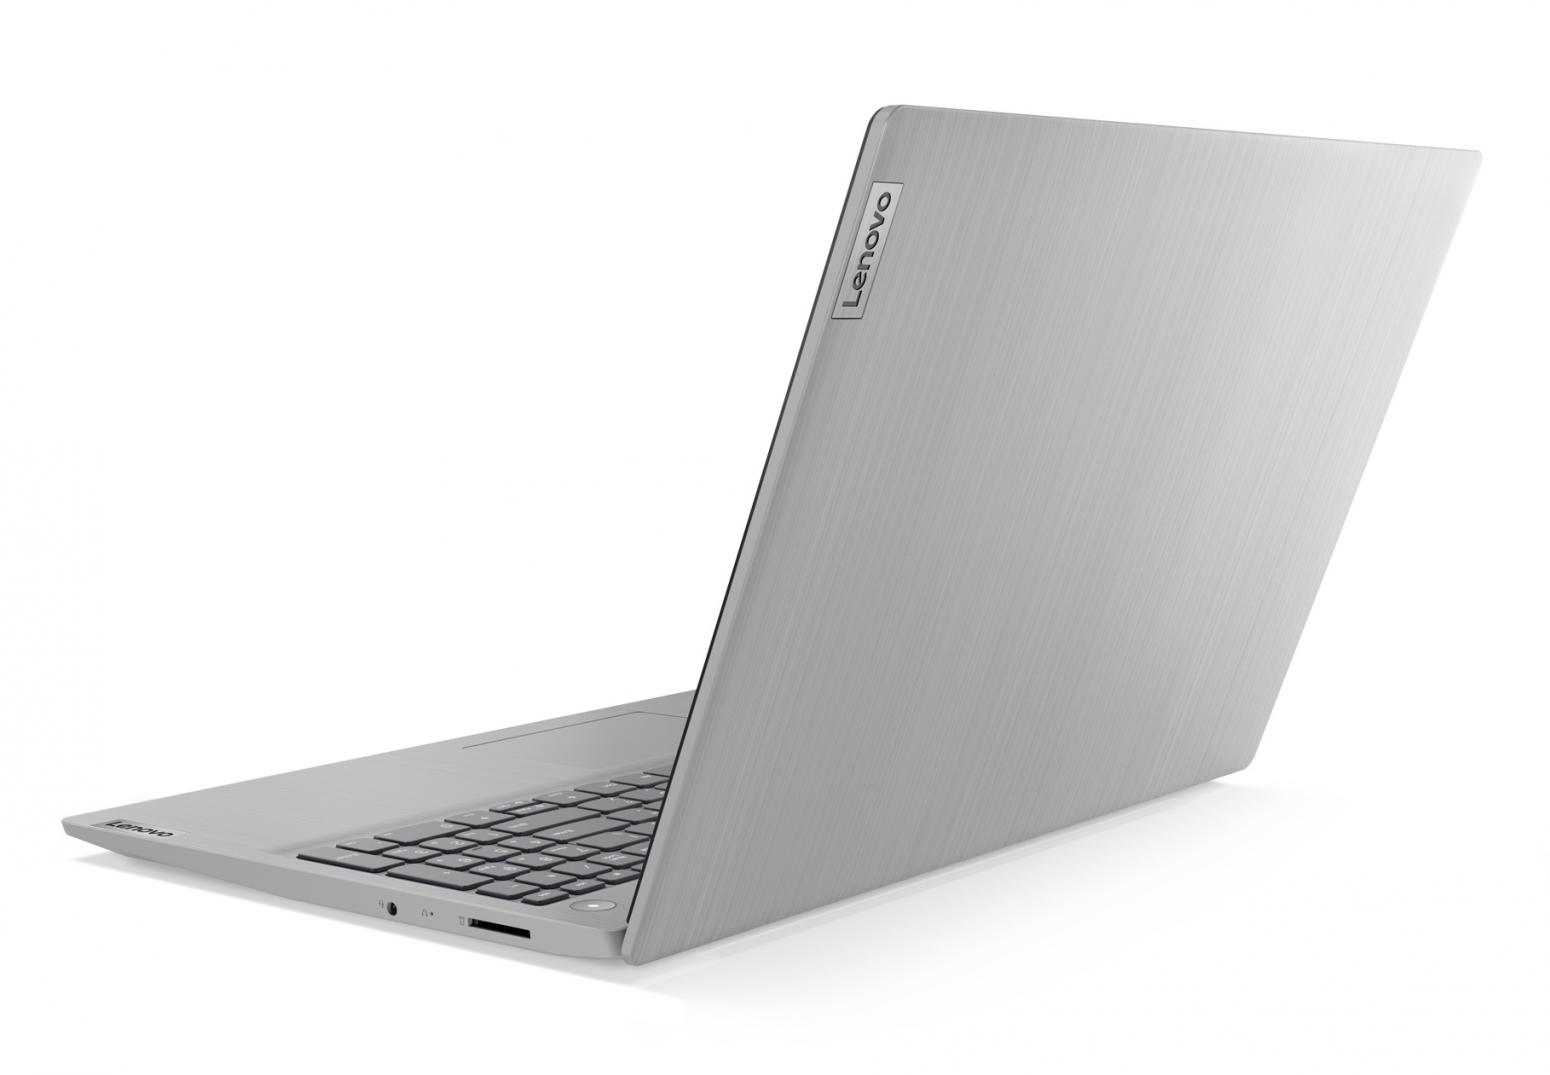 Ordinateur portable Lenovo IdeaPad 3 15ARE05 (81W4001HFR) Argent - photo 3